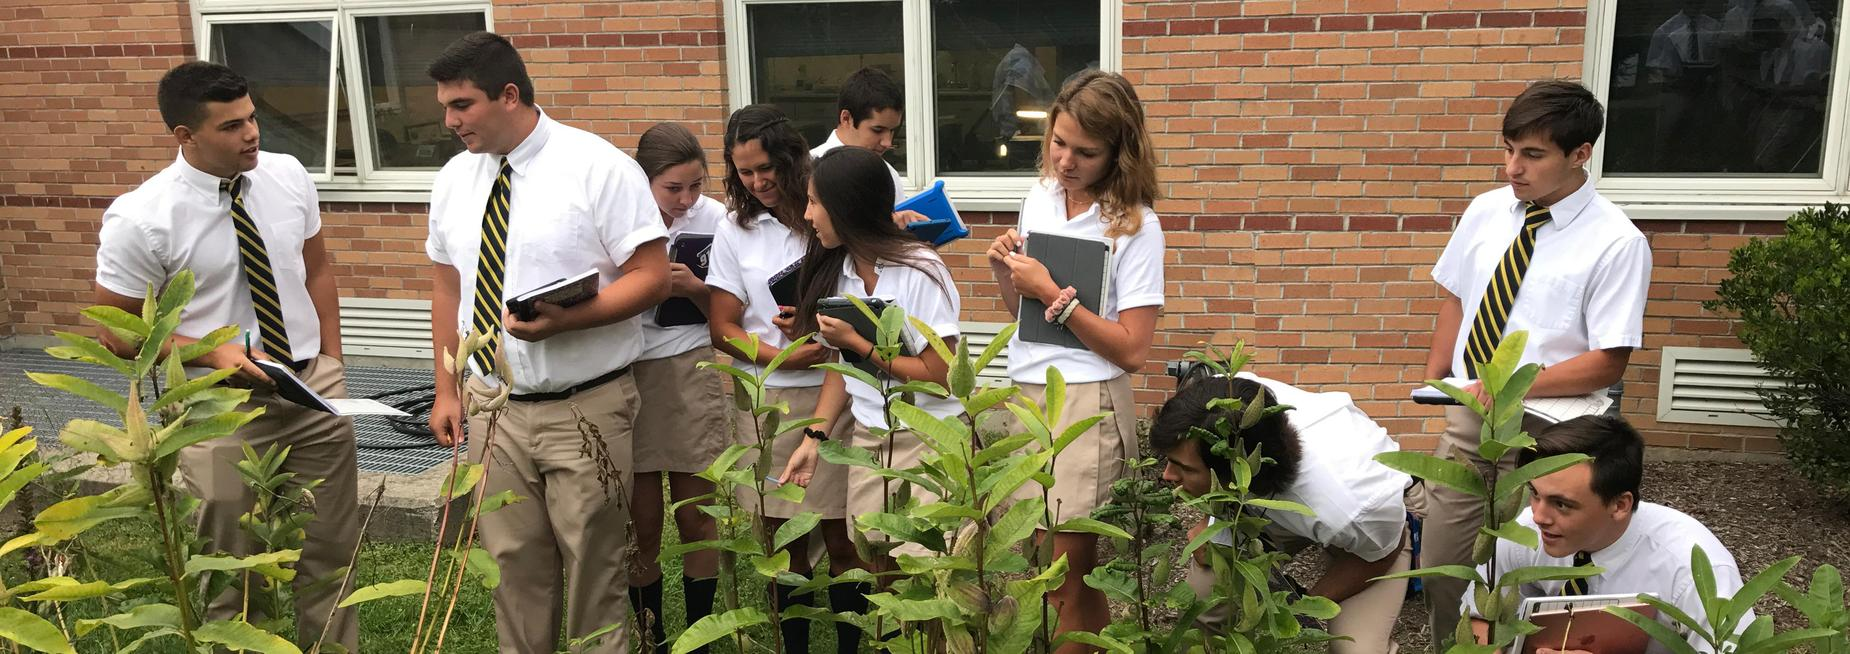 Pope John students studying monarch butterflies